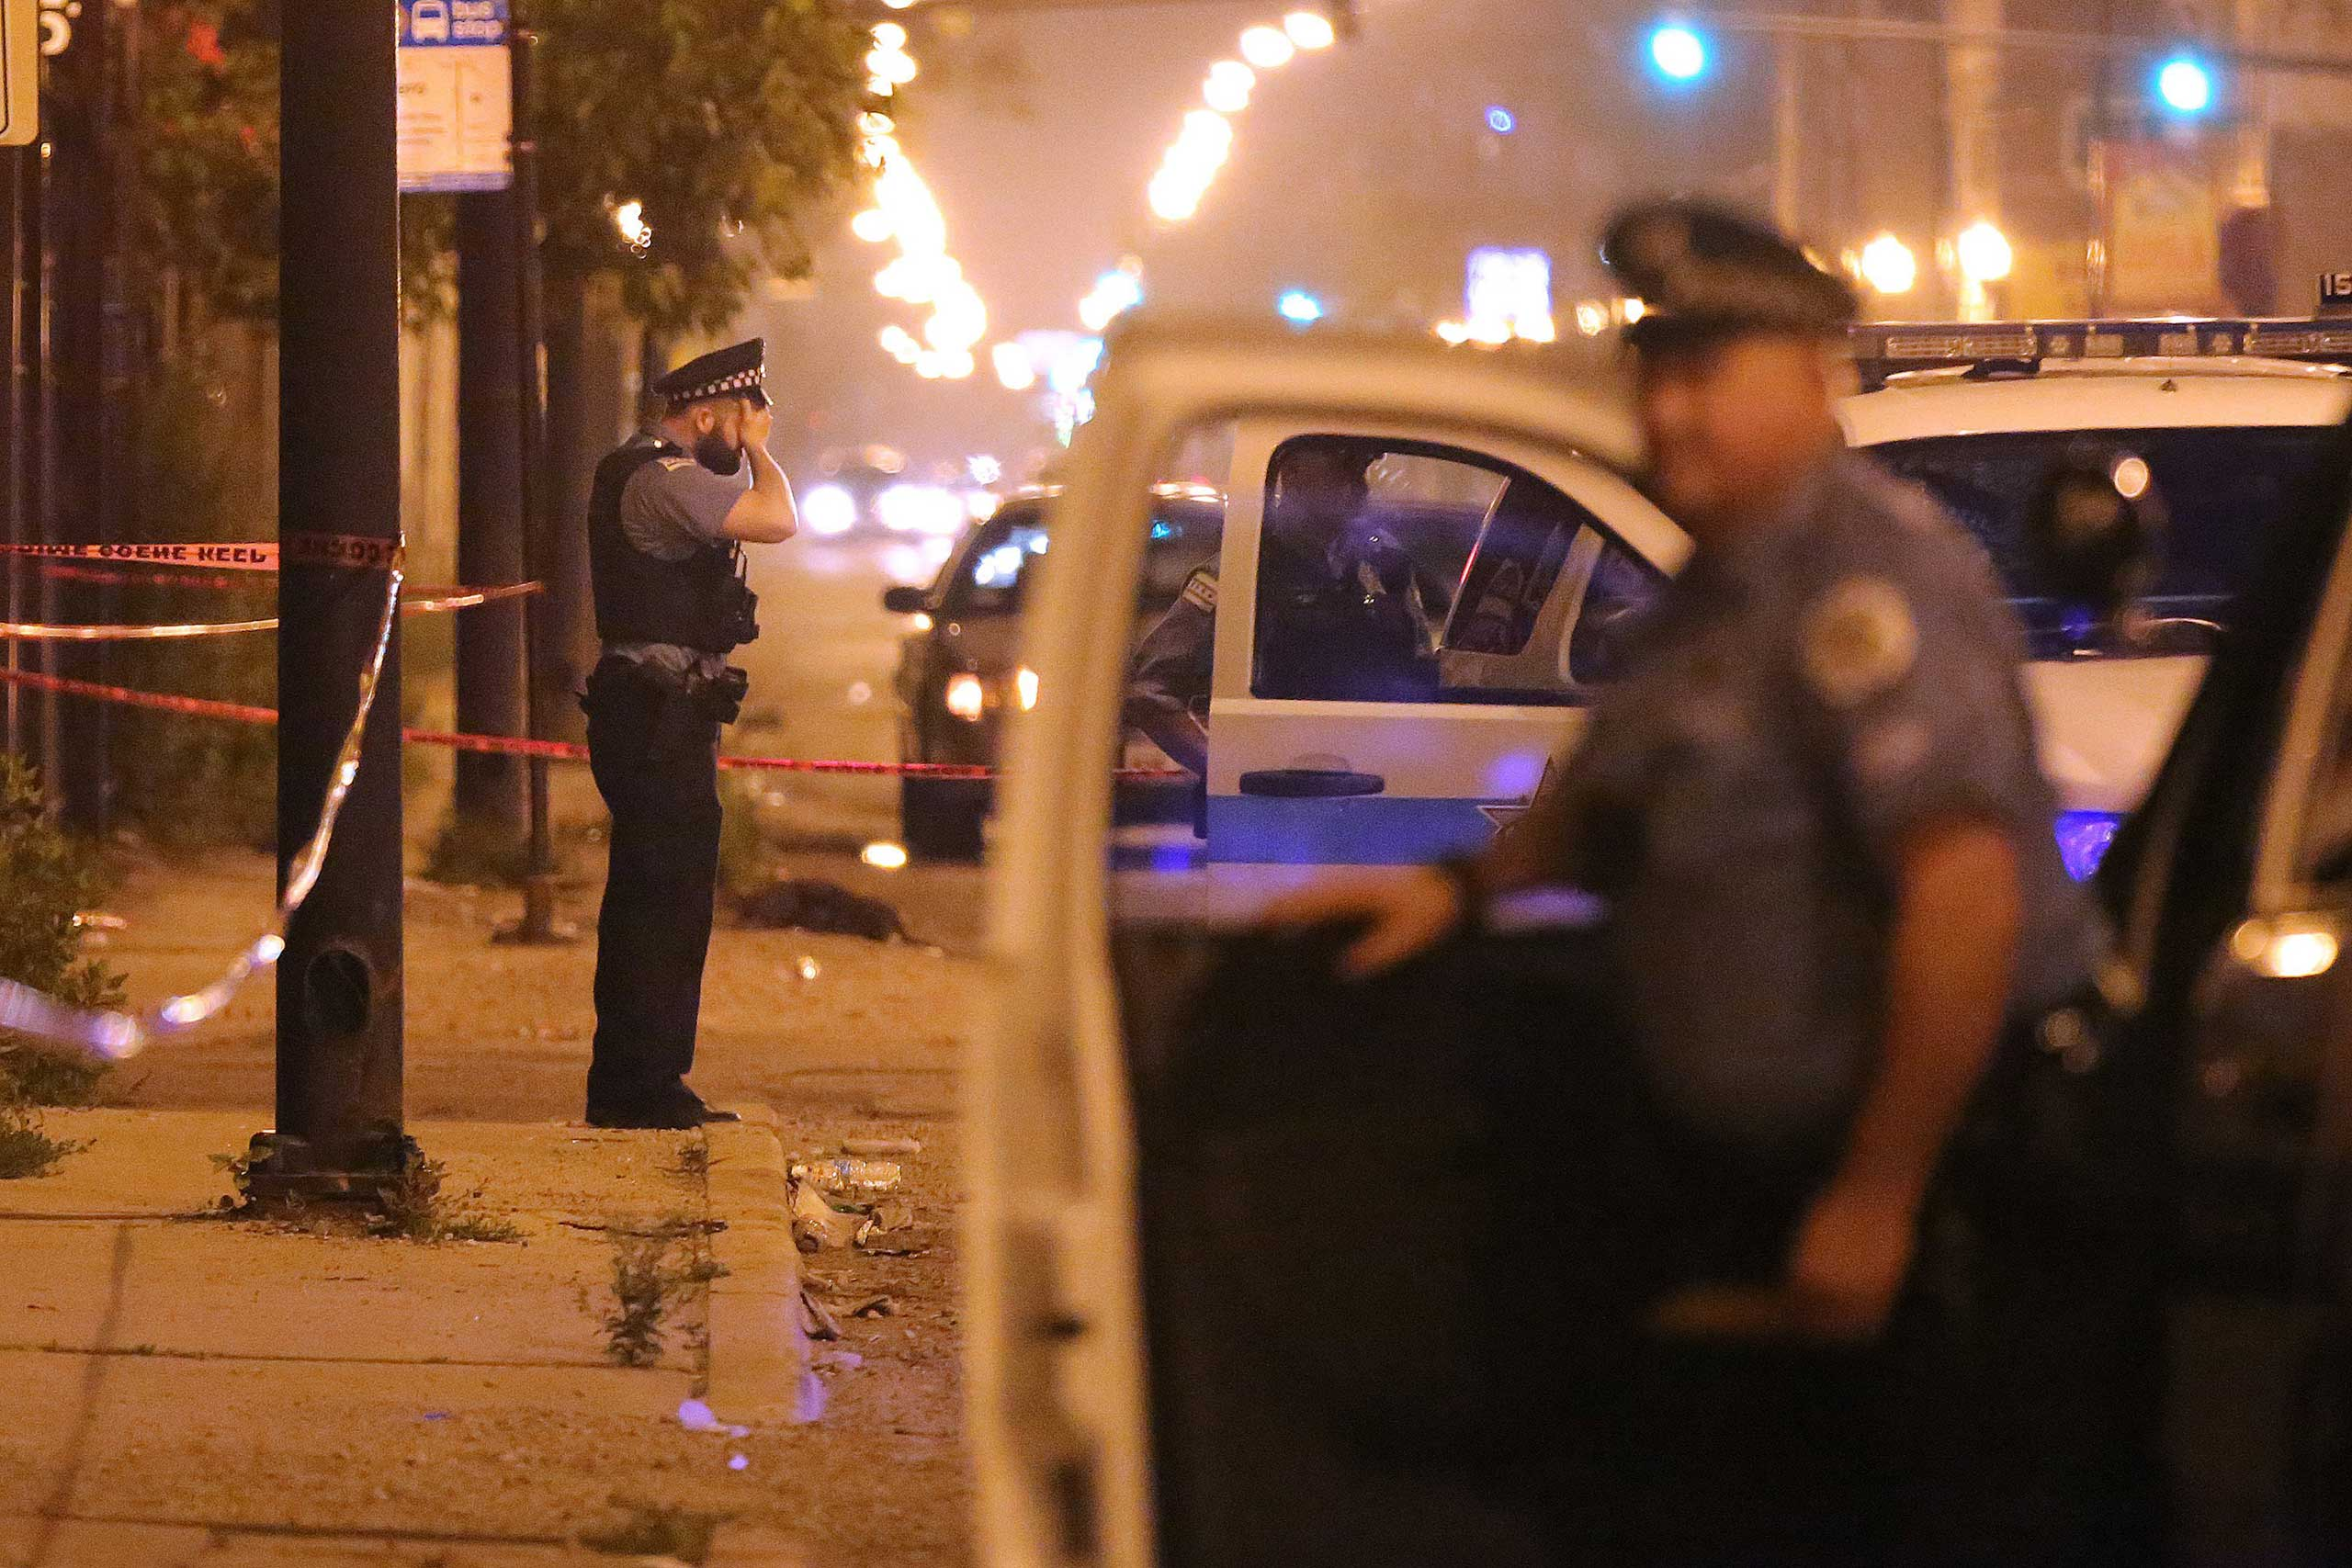 A police officer rests his hand on his forehead at the scene where a 23-year old man was shot in the early morning hours of July 6, 2015 in Chicago.